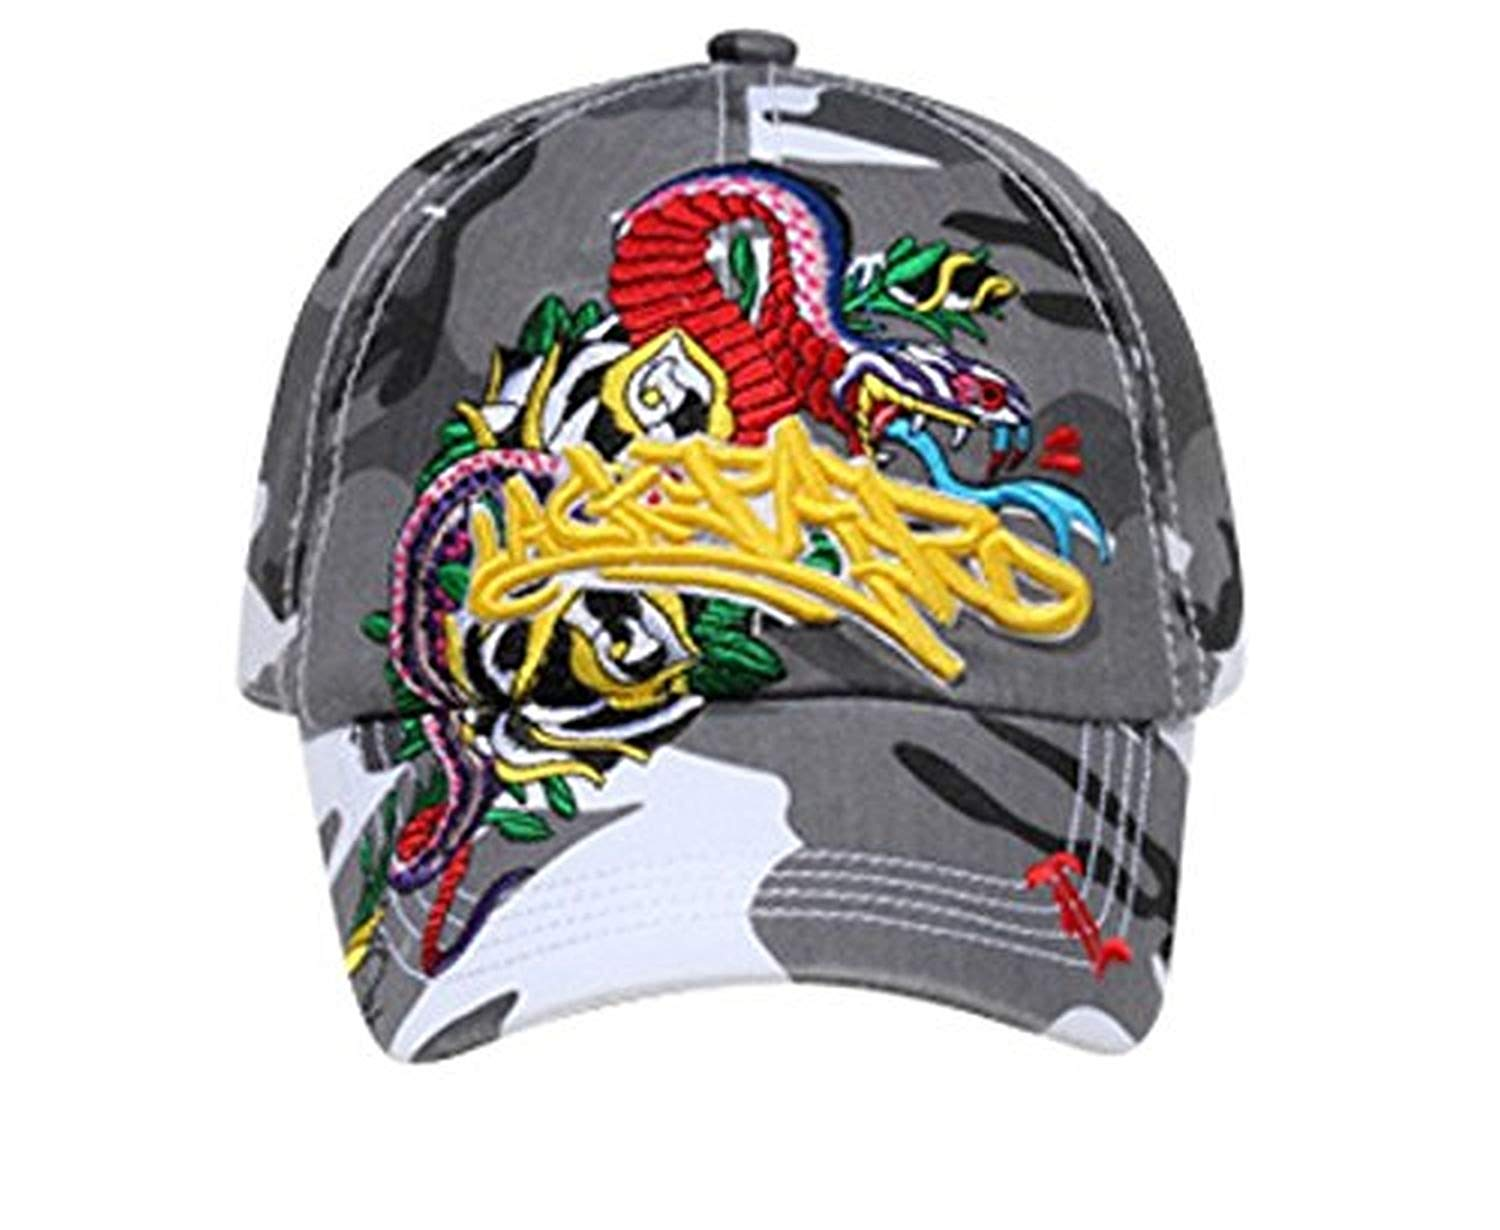 Hats & Caps Shop 3D Lackpard Embroidered Design Caps - By TheTargetBuys